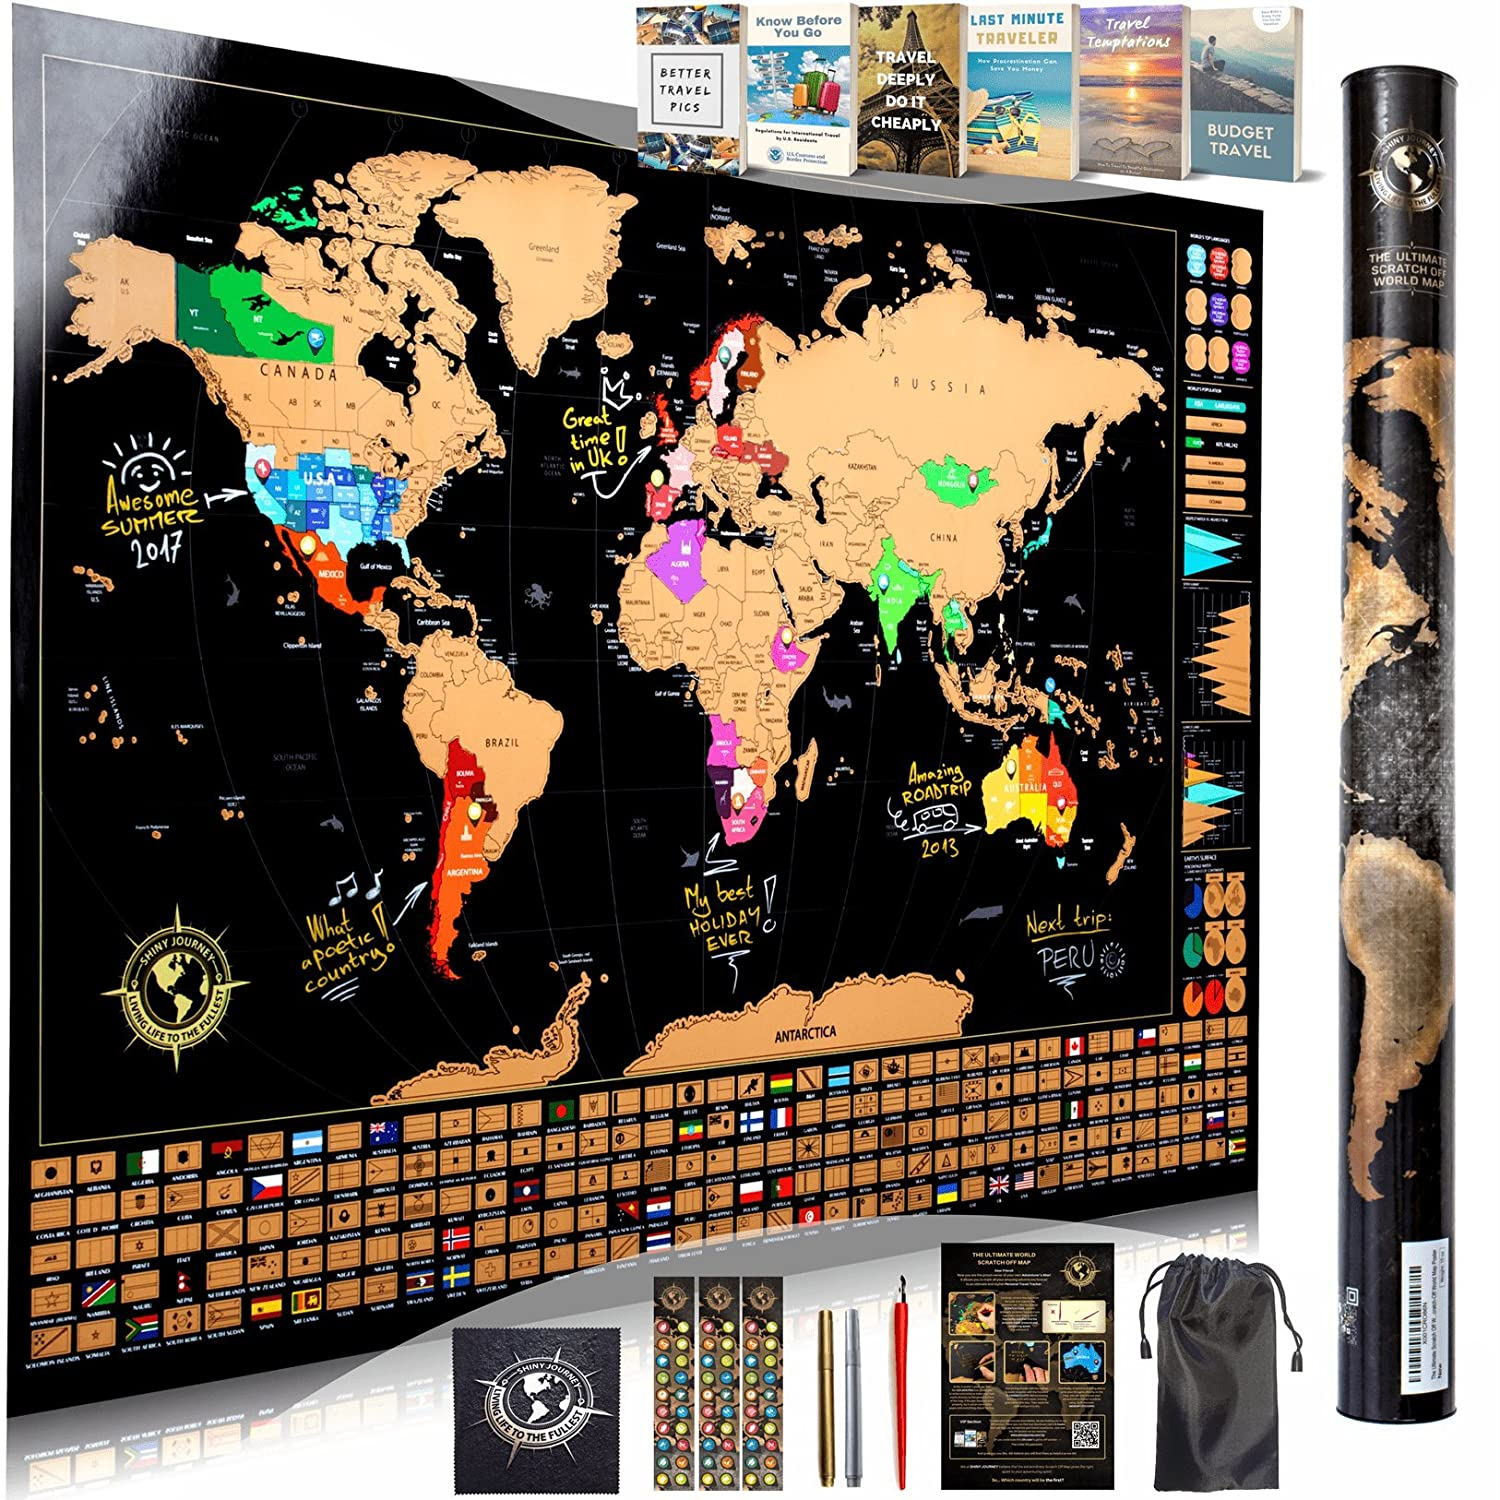 Scratch Off World Map Wall Poster - Ultimate Pack of Tools and Travel Ebooks - Stylish Large 34.5x24 Trip Tracker with US States, Infographics, Flags and More - Combines The Best of Scratch-Off Maps Shiny Journey SJWSMU2